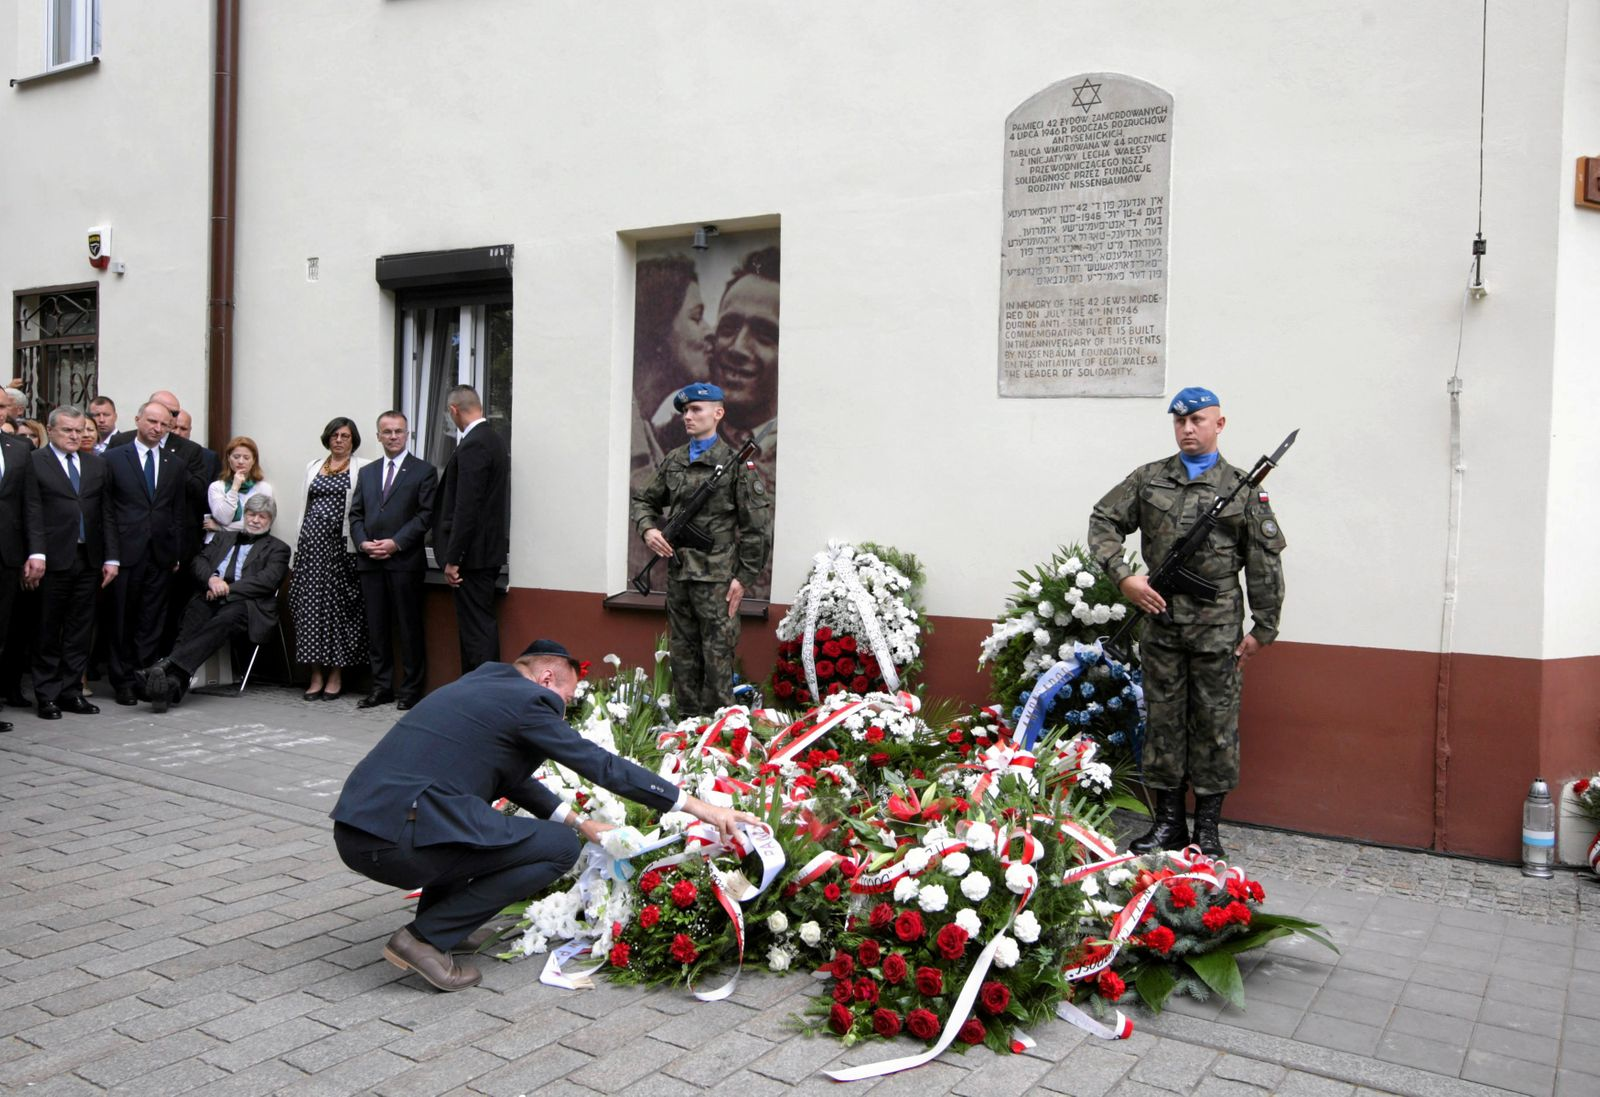 Officials take part in the ceremony to commemorate 70th anniversary of a 1946 massacre of Jews in Kielce